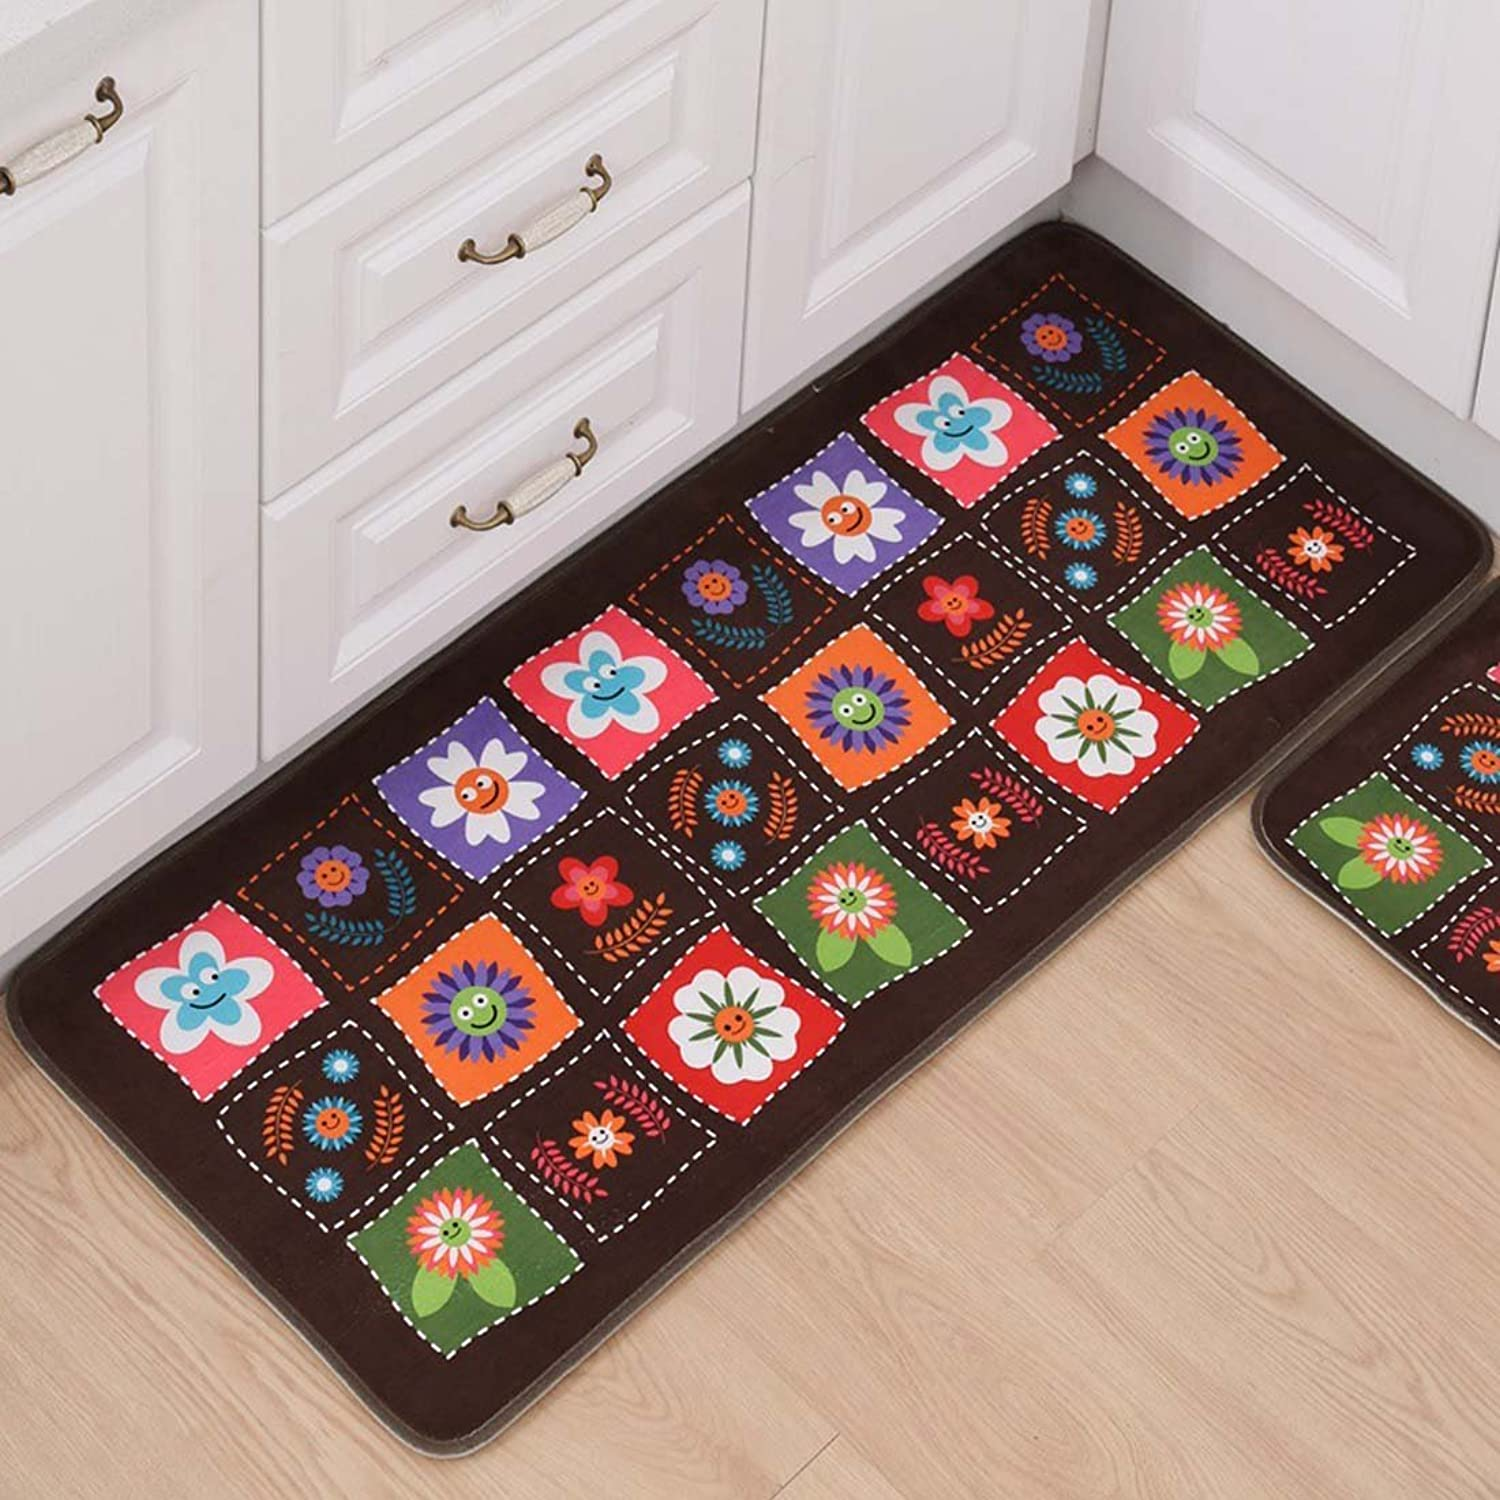 Indoor Outdoor 3PCS Doormat Entrance Welcome Mat Absorbent Runner Inserts Non Slip Entry Rug Funny Various Flowers with Coffee Background, Home Decor Inside Floor Carpet 15 x23  19 x31  19 x47